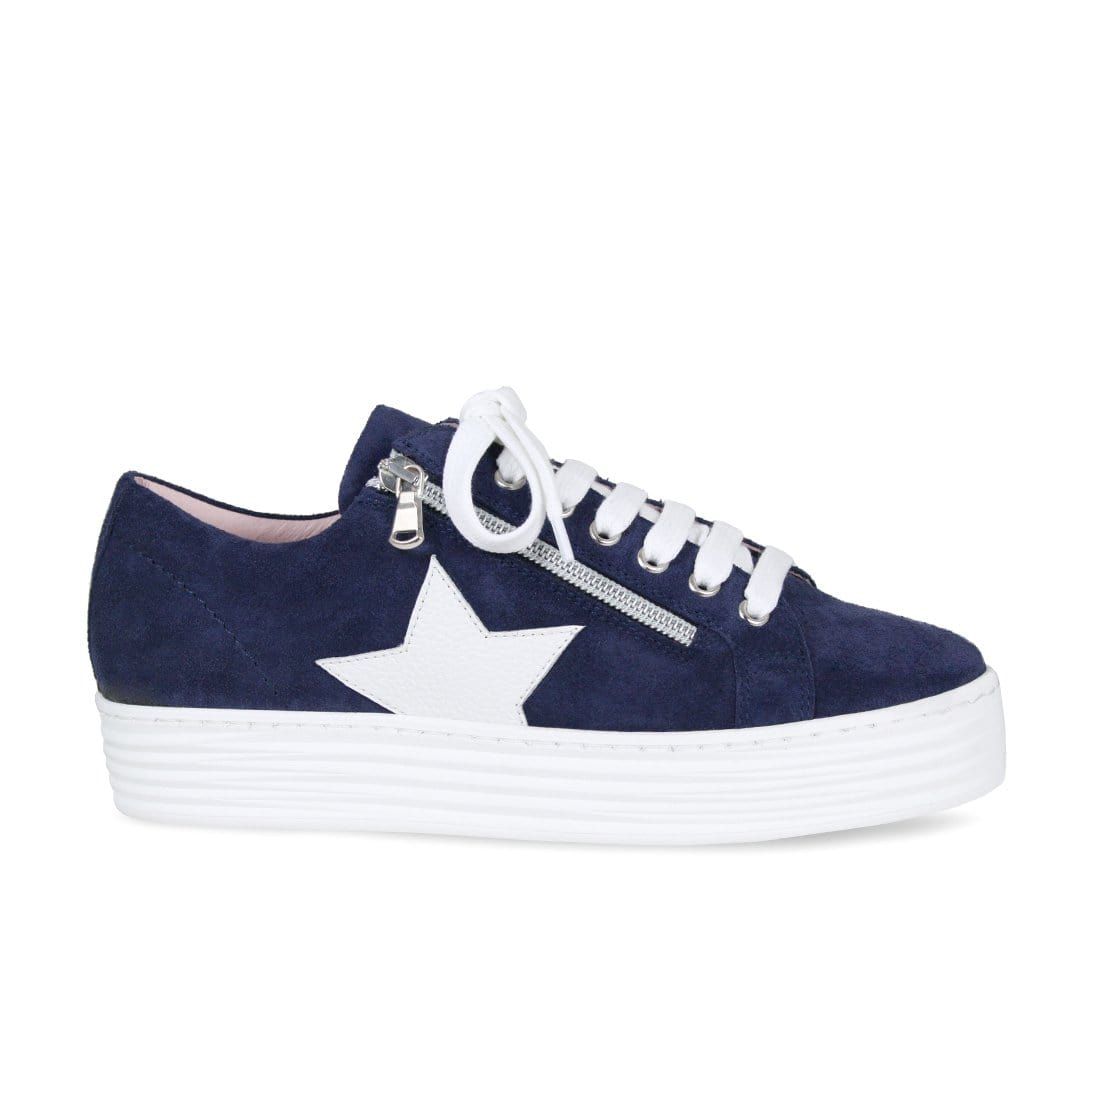 Star: Navy Suede (More Stock Coming Soon)